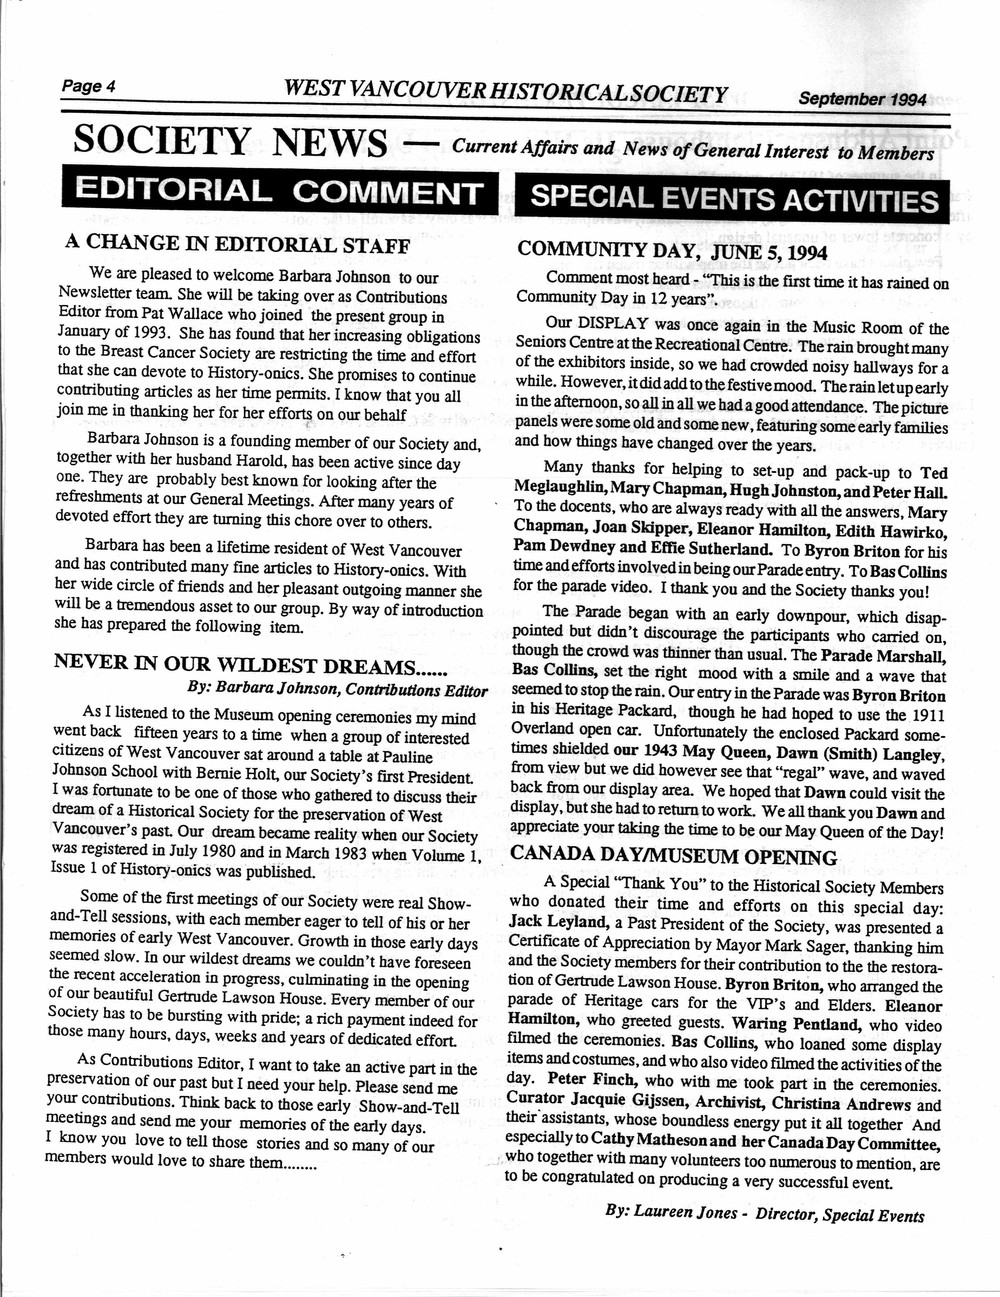 History-onics (West Vancouver, BC: West Vancouver Historical Society), September 1994